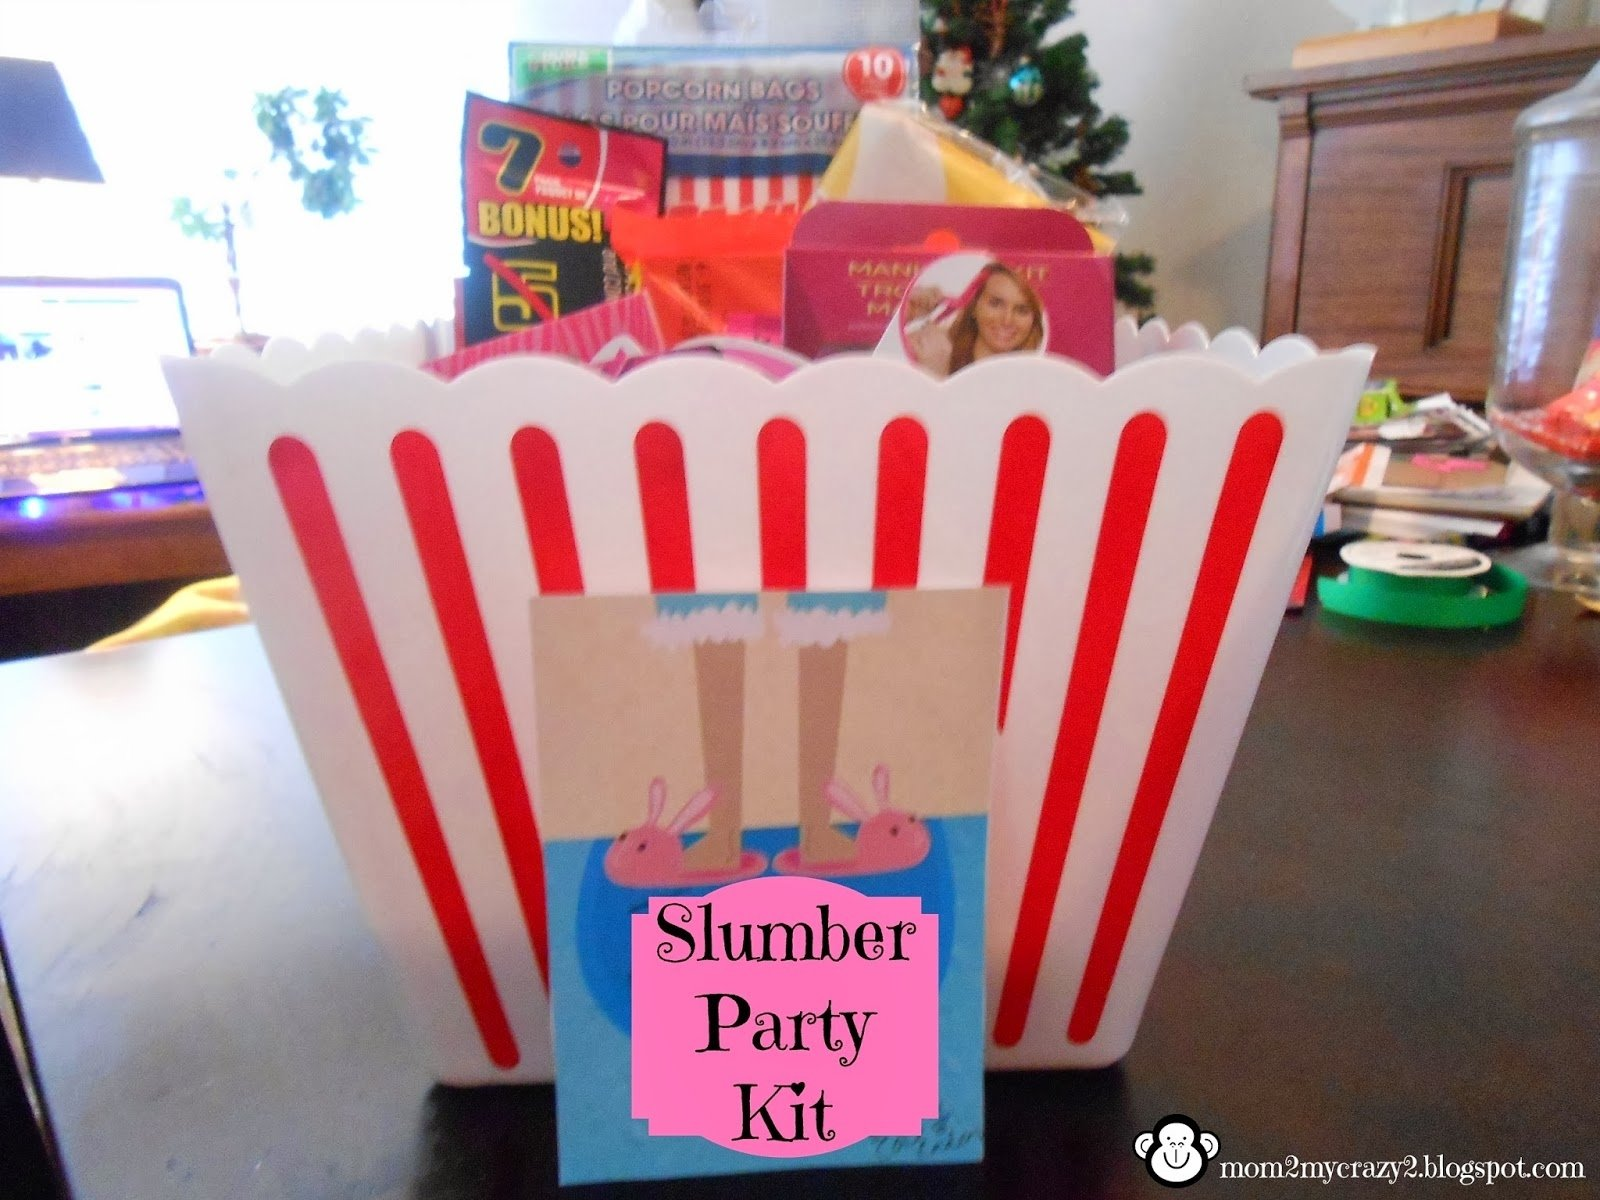 10 Perfect Birthday Party Ideas For Boys Age 10 running away ill help you pack unique gift time slumber 1 2021